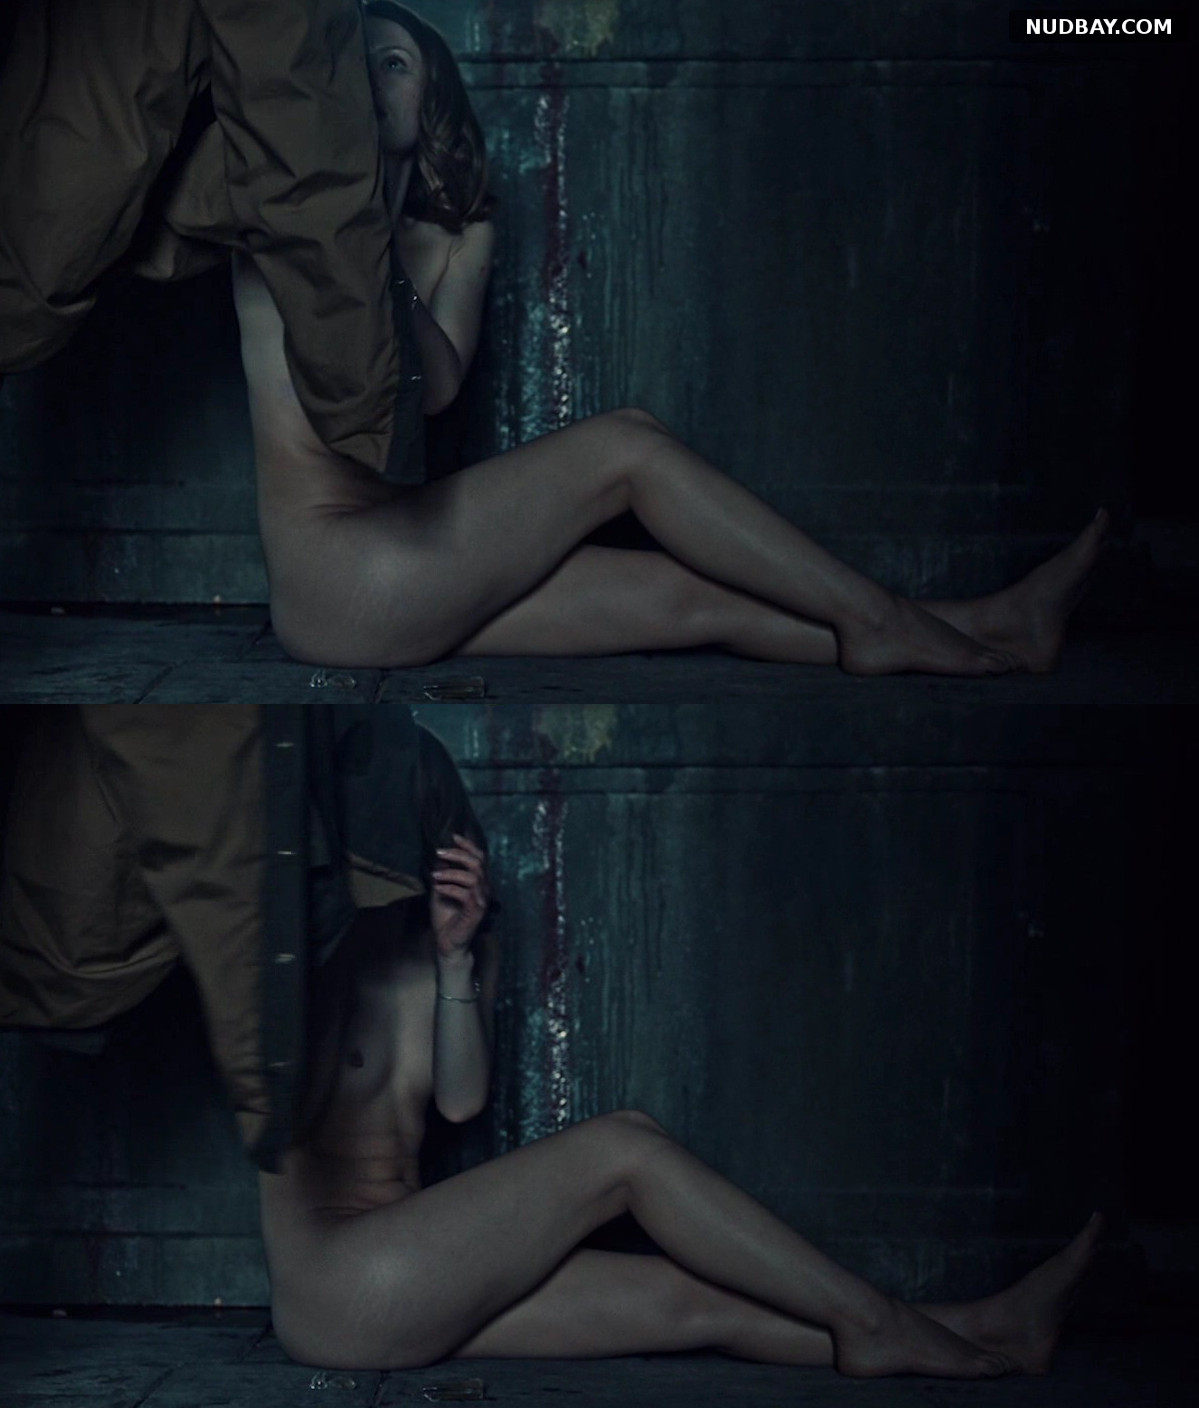 Emily Browning nude in American Gods S03E04 (2021)